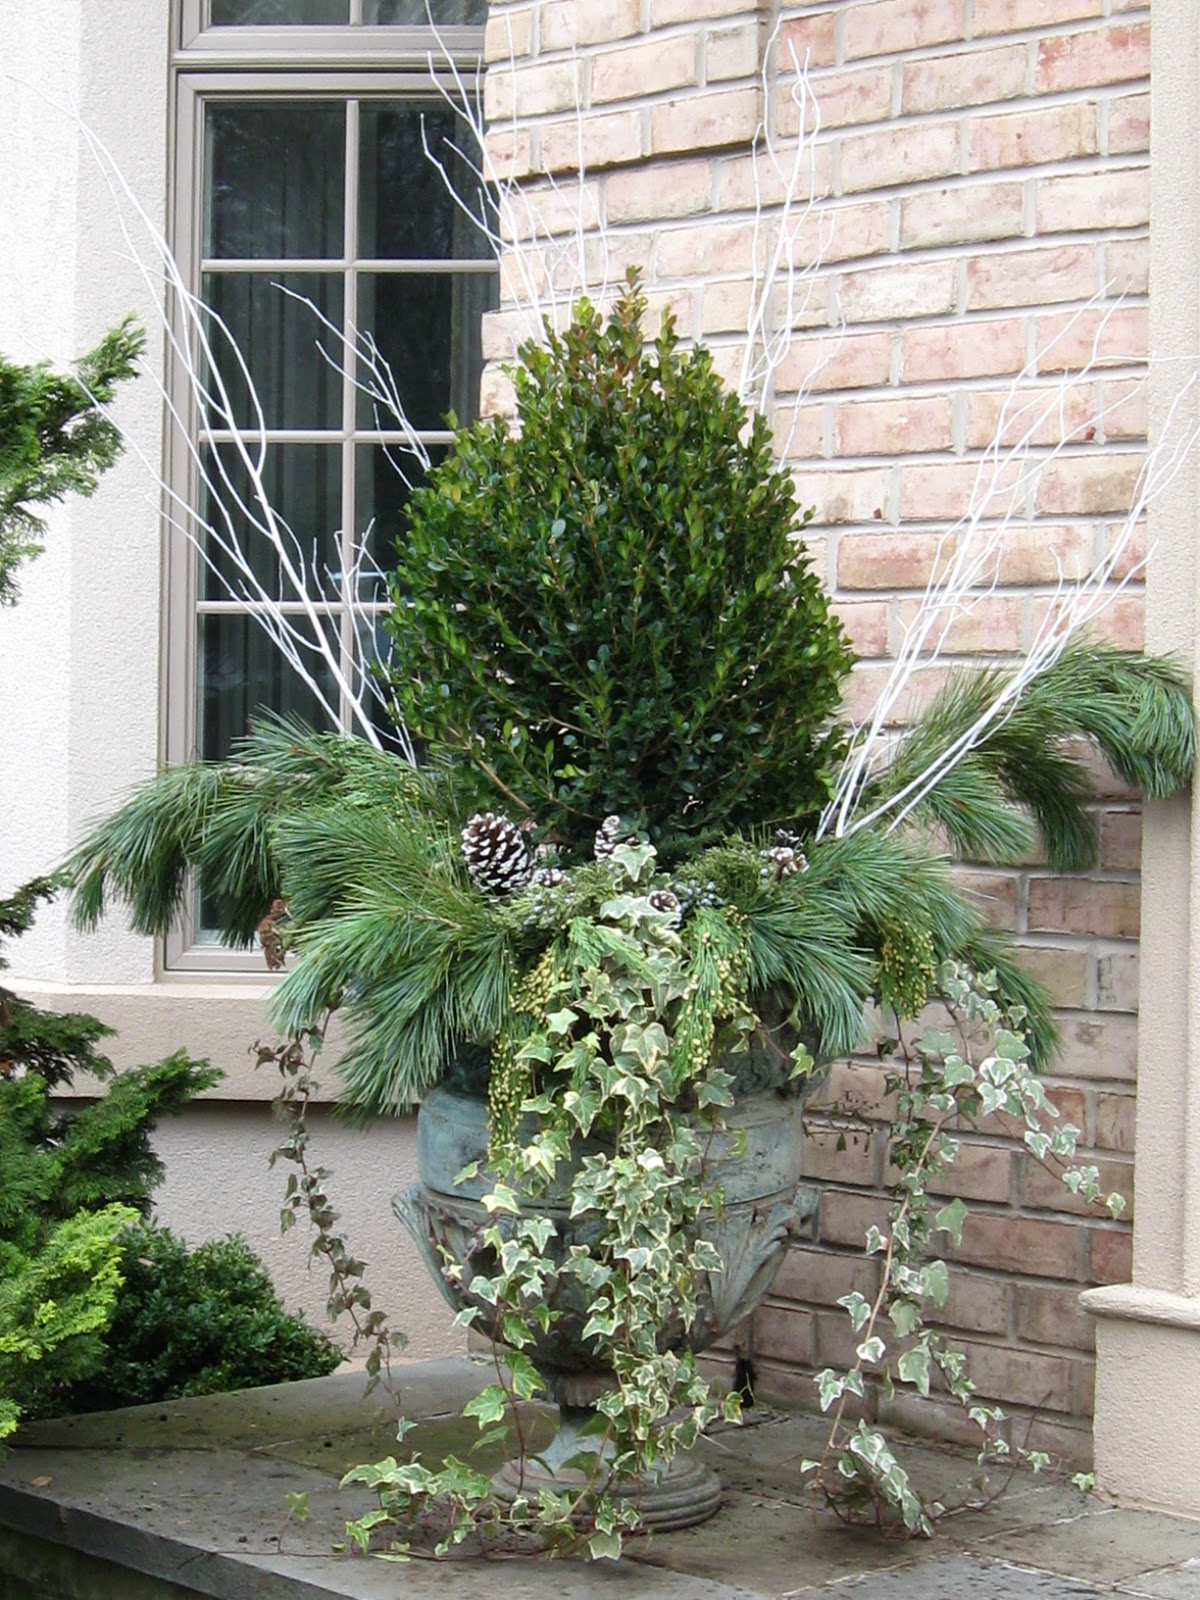 The Designer's Muse: Winter Planters